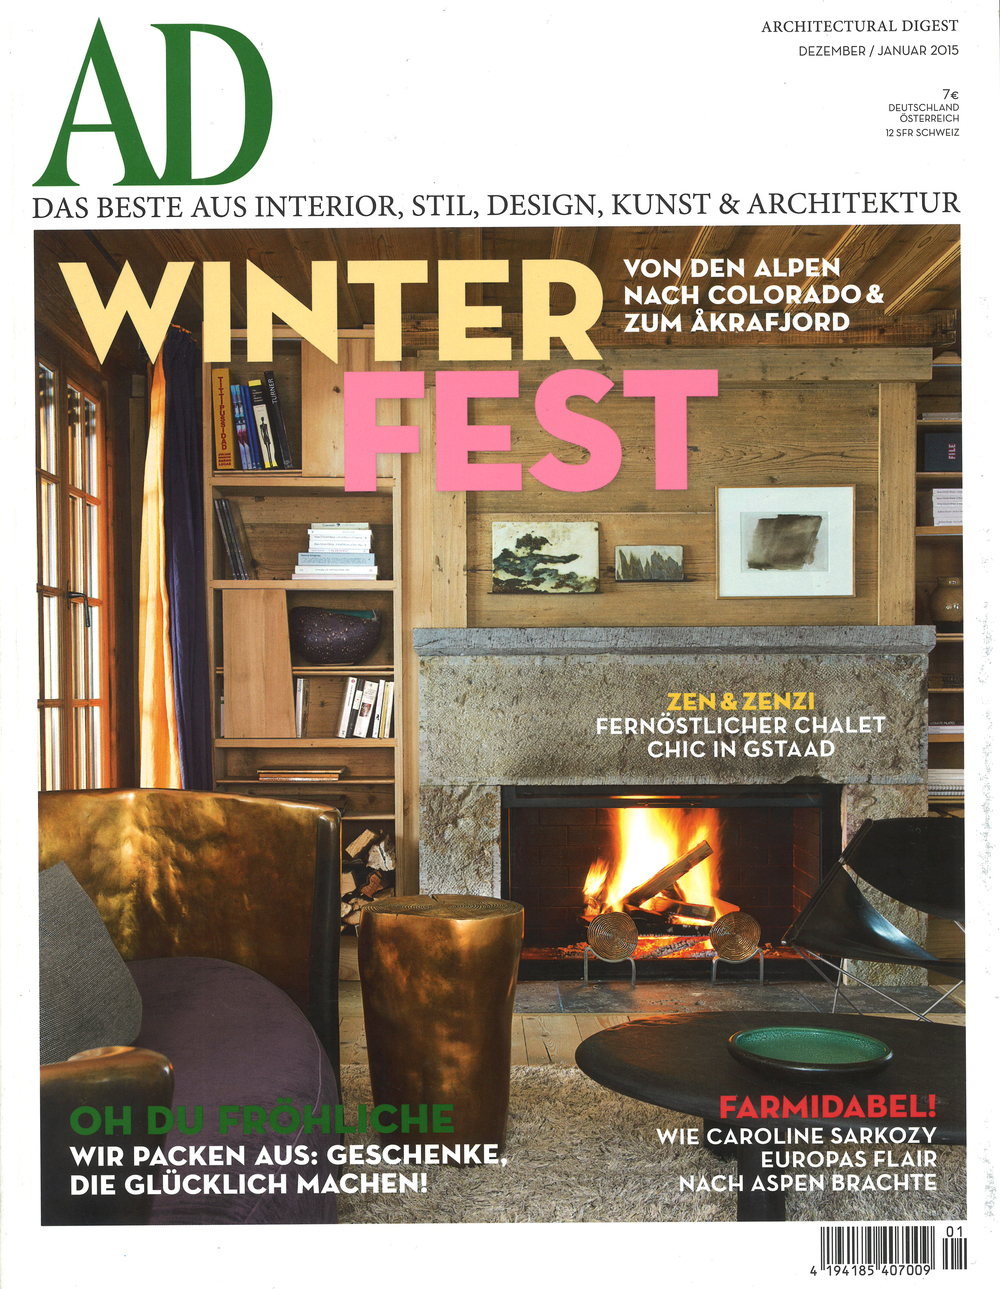 AD Germany_Dec-Jan 2014.15_cover.jpg